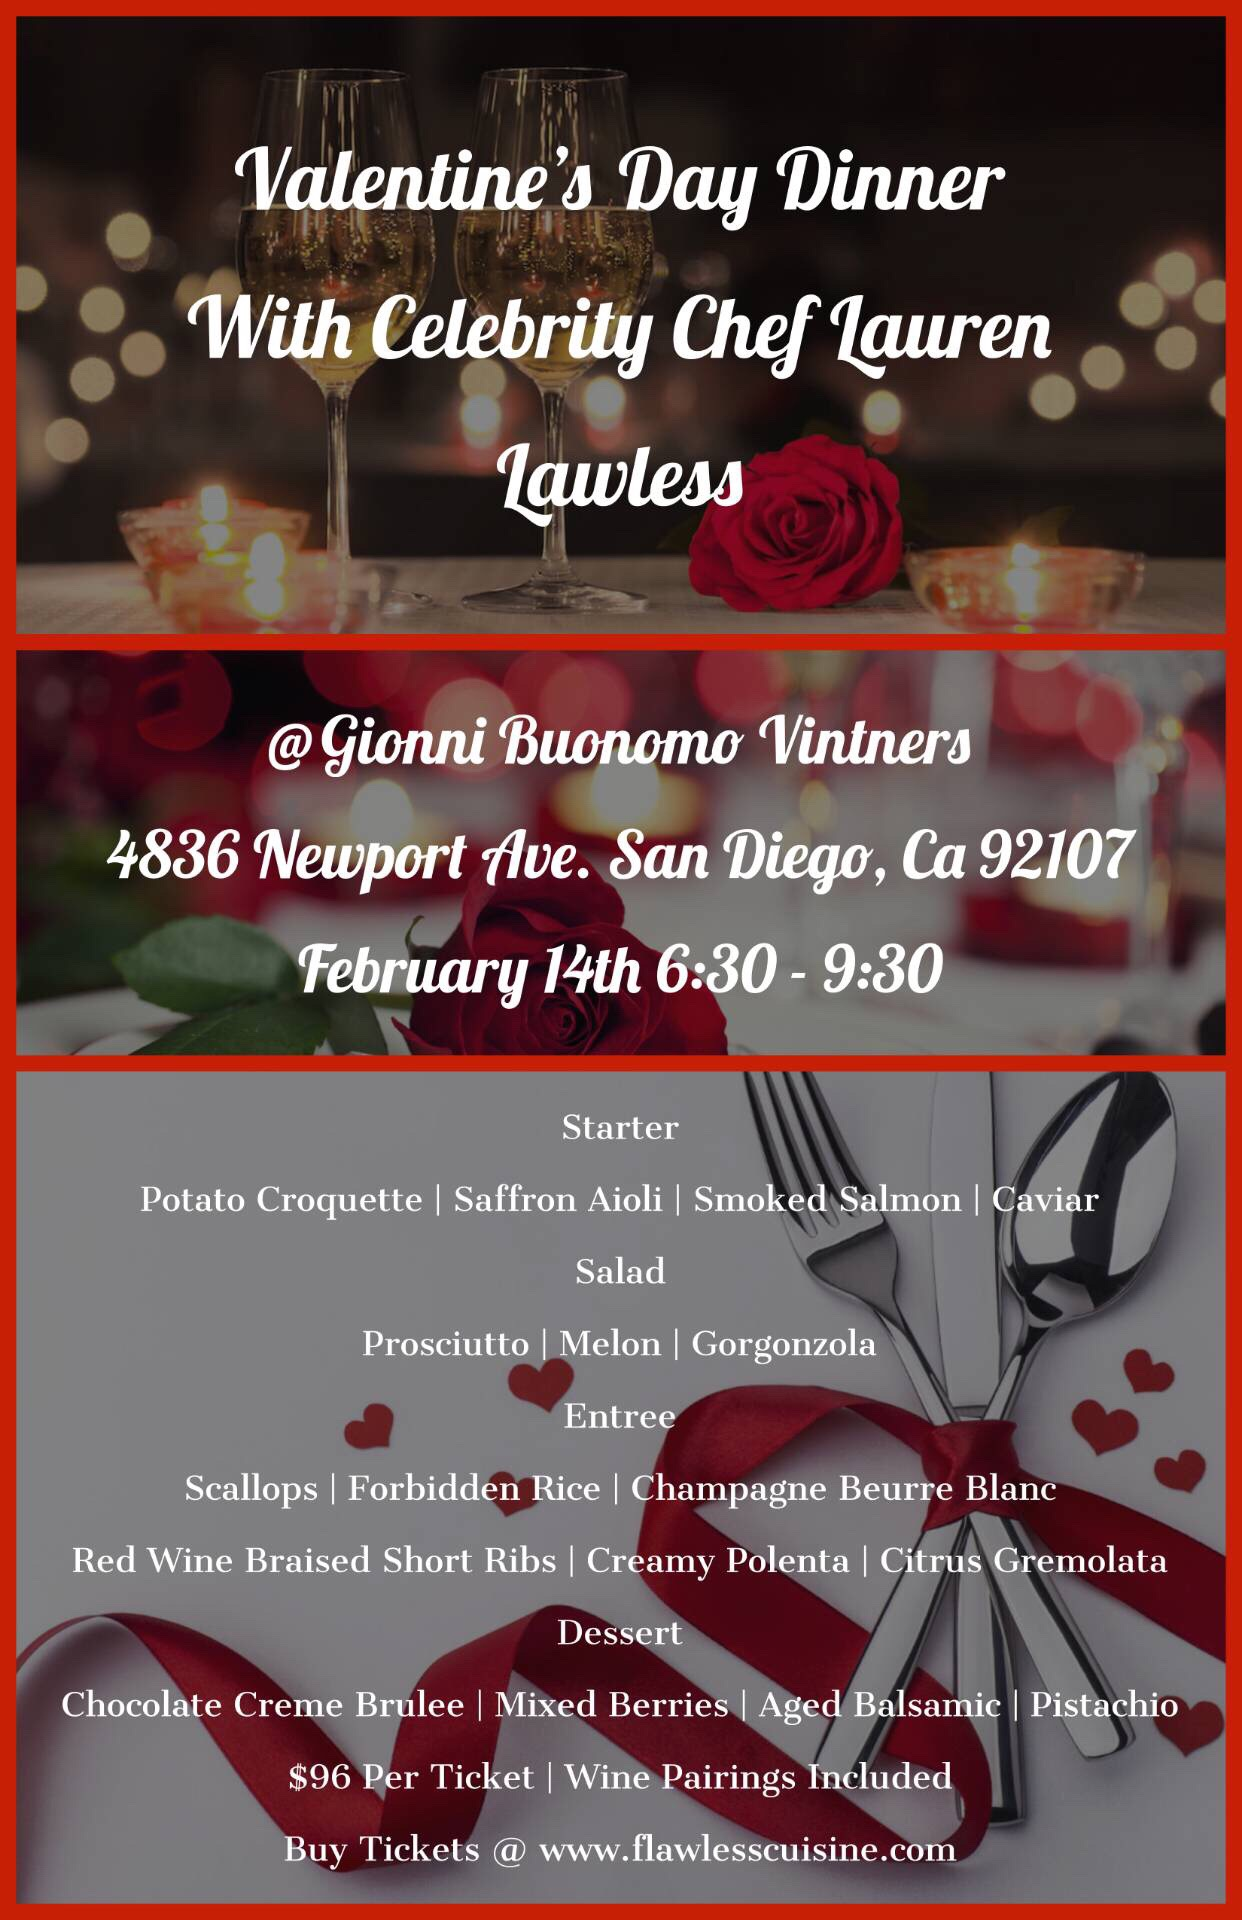 Valentine's Day Dinner With Celebrity Chef  Lauren Lawless (almost sold out)